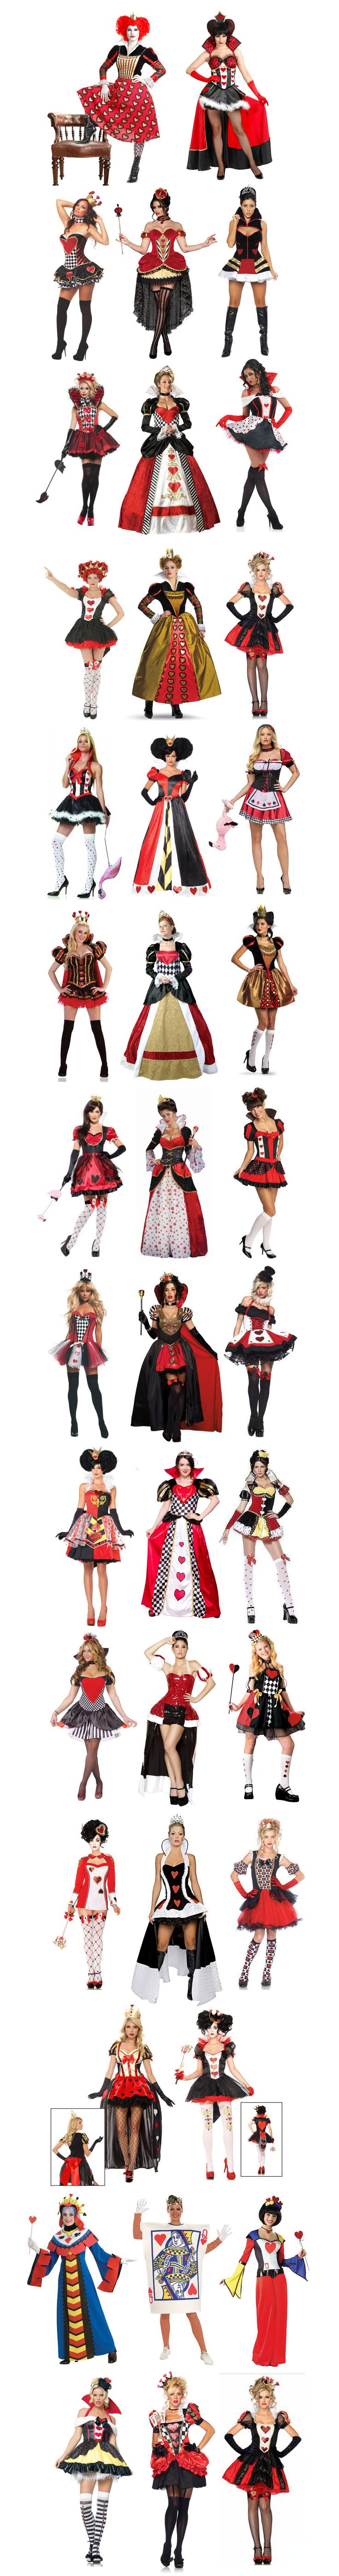 The Queen of Hearts.  She may not be the most popular Disney Villain, but she…